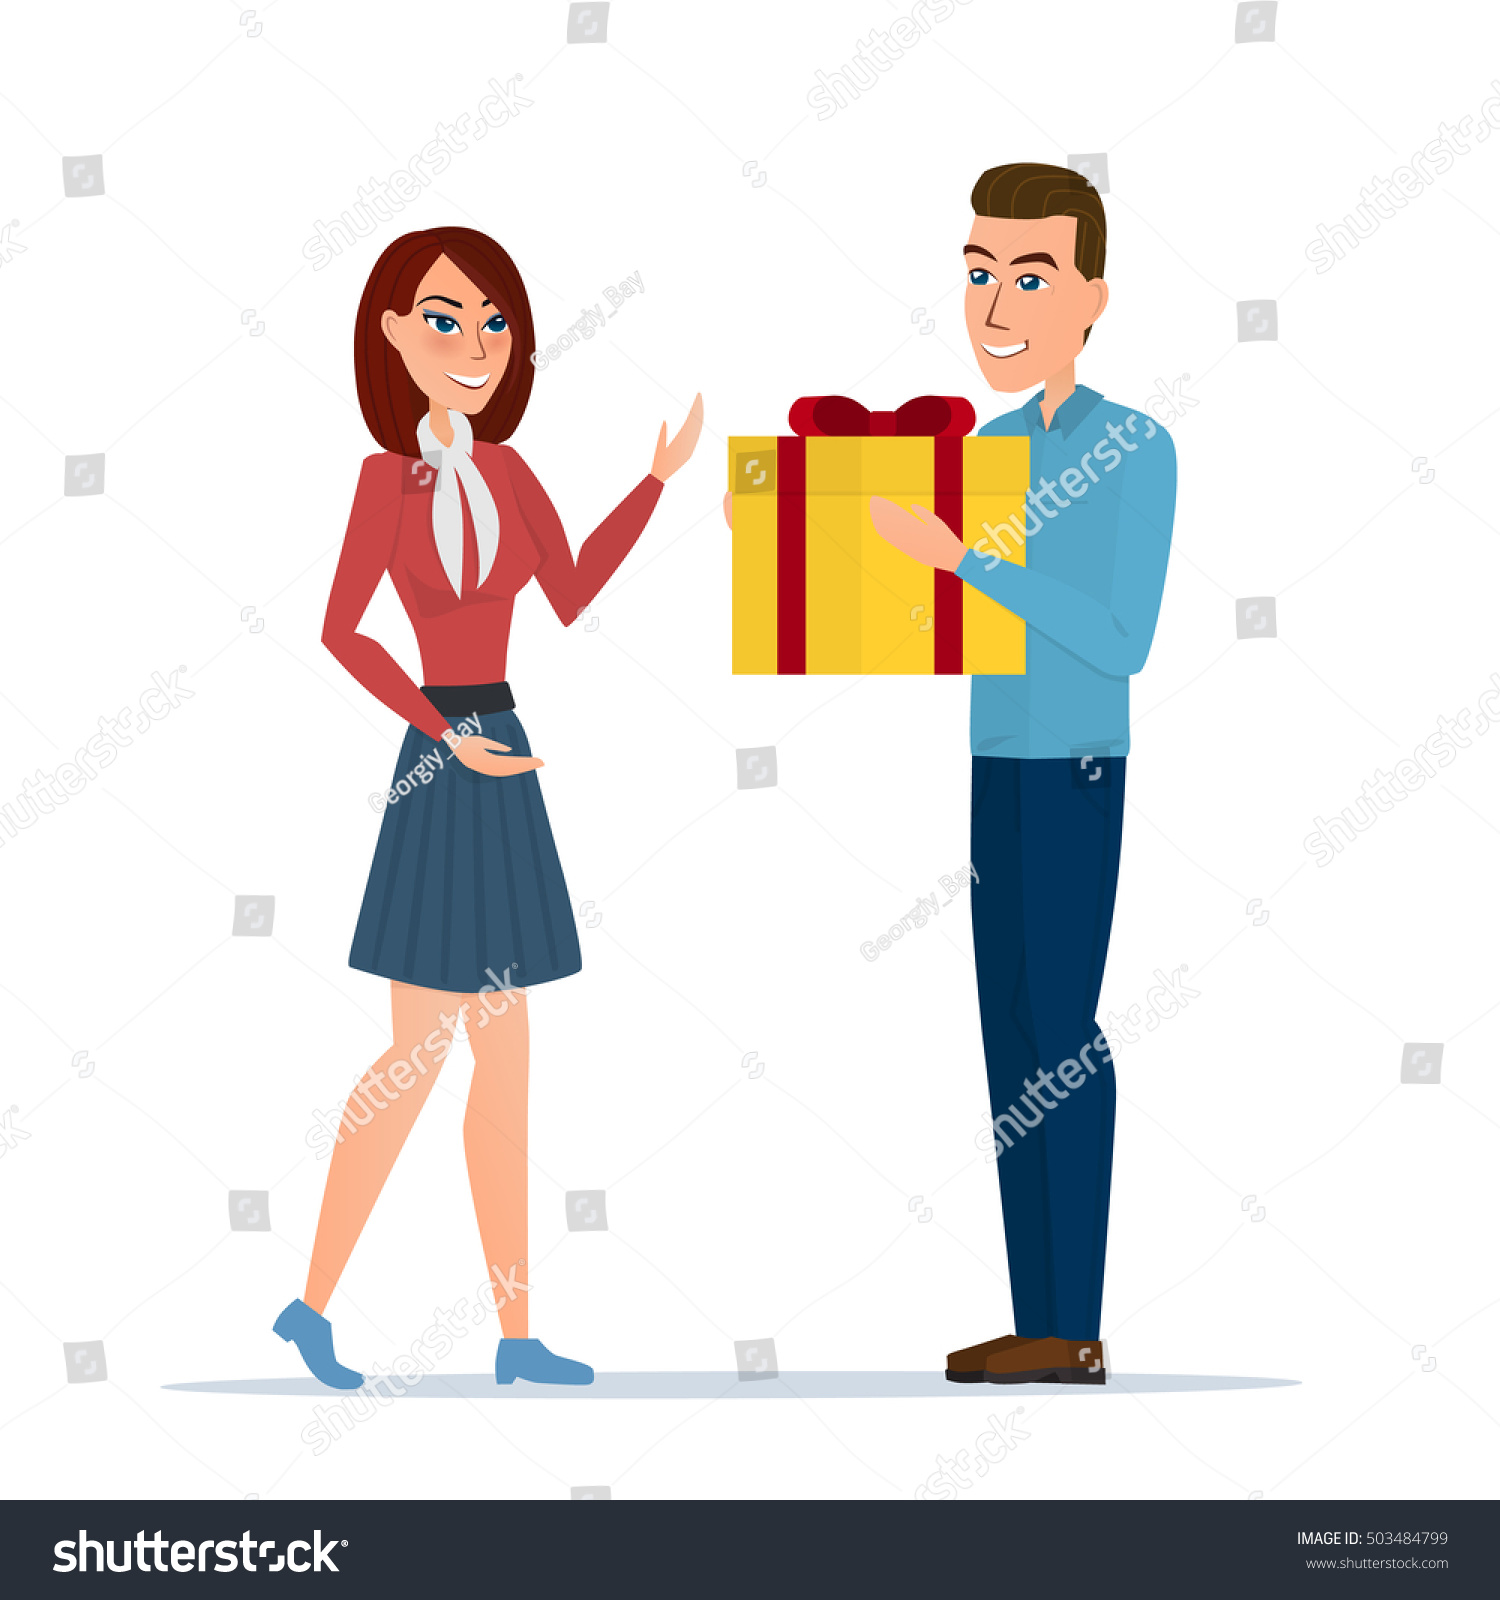 Business team cartoon characters cartoon vector cartoondealer com - Cartoon Boy Giving Girl A Gift Box Vector Illustration Isolated On White Background In Flat